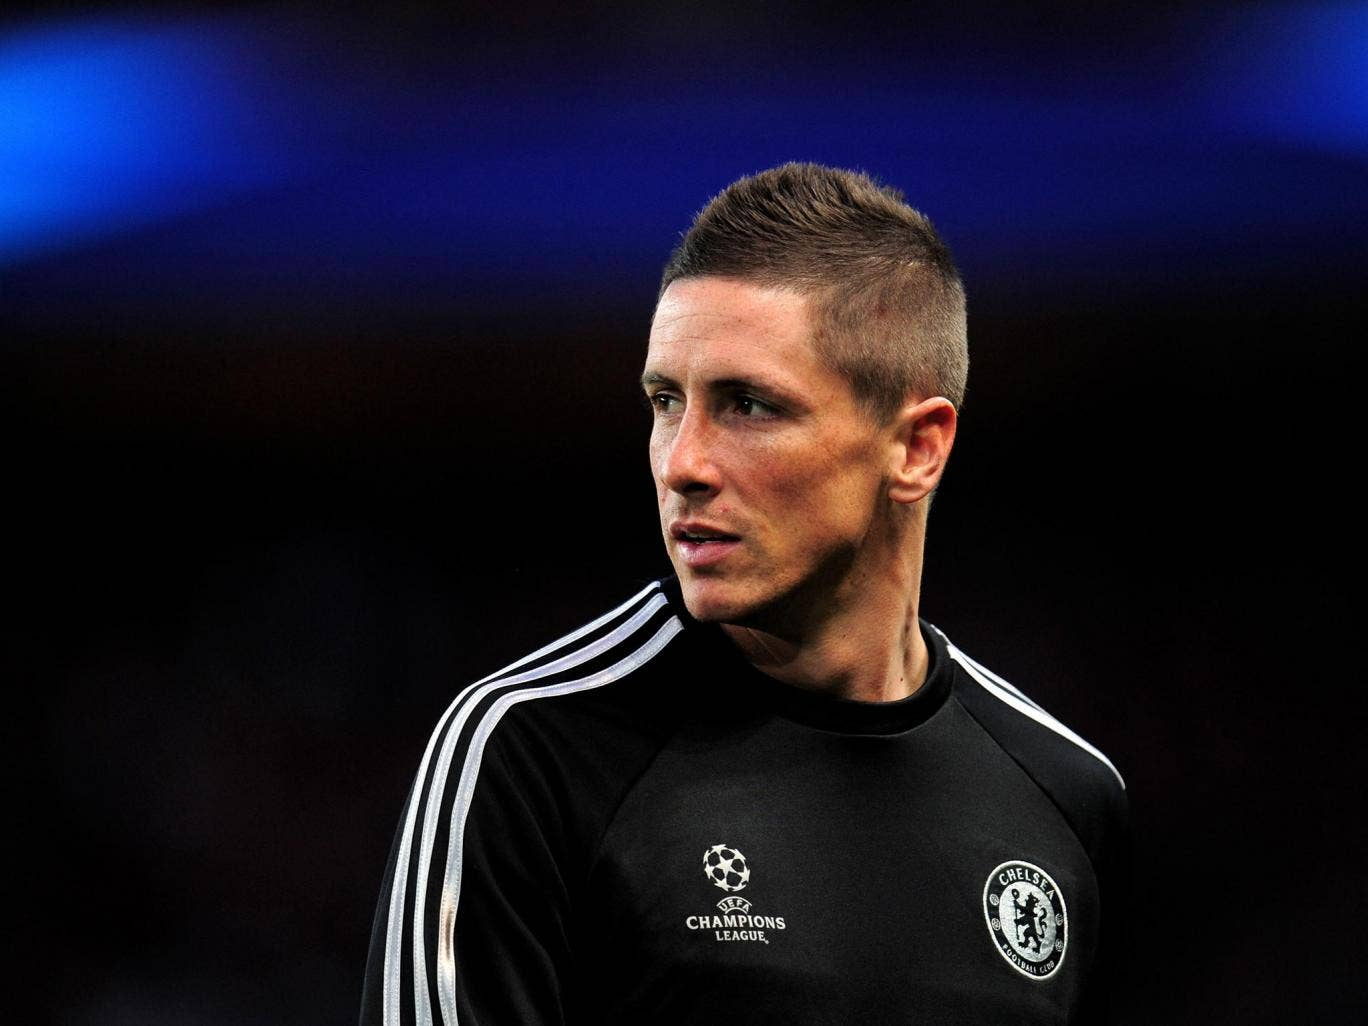 Fernando Torres of Chelsea has been on the receiving end of some criticism from his manager